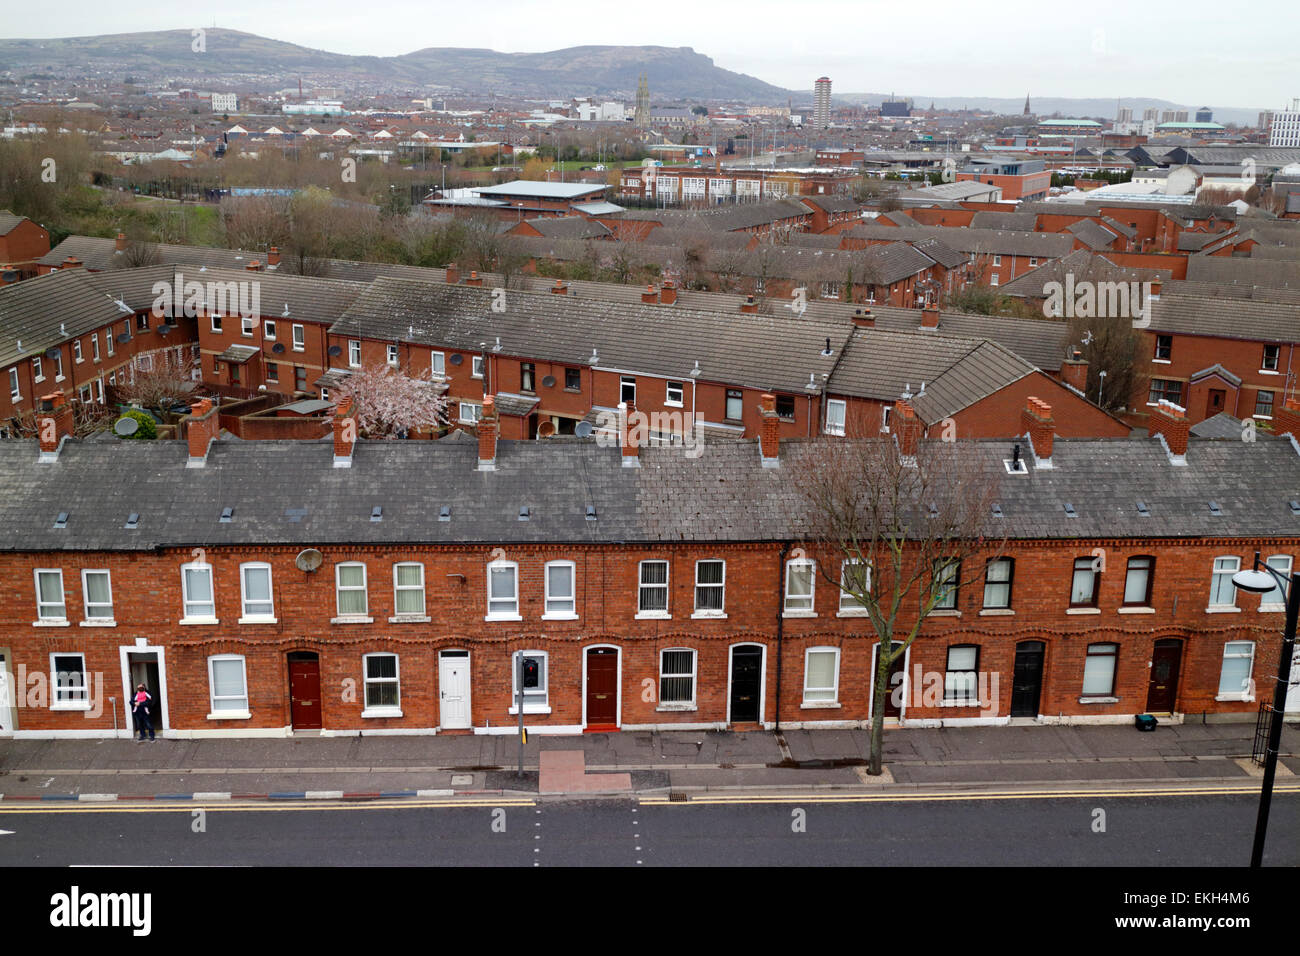 view over old village area of south and west belfast northern ireland - Stock Image